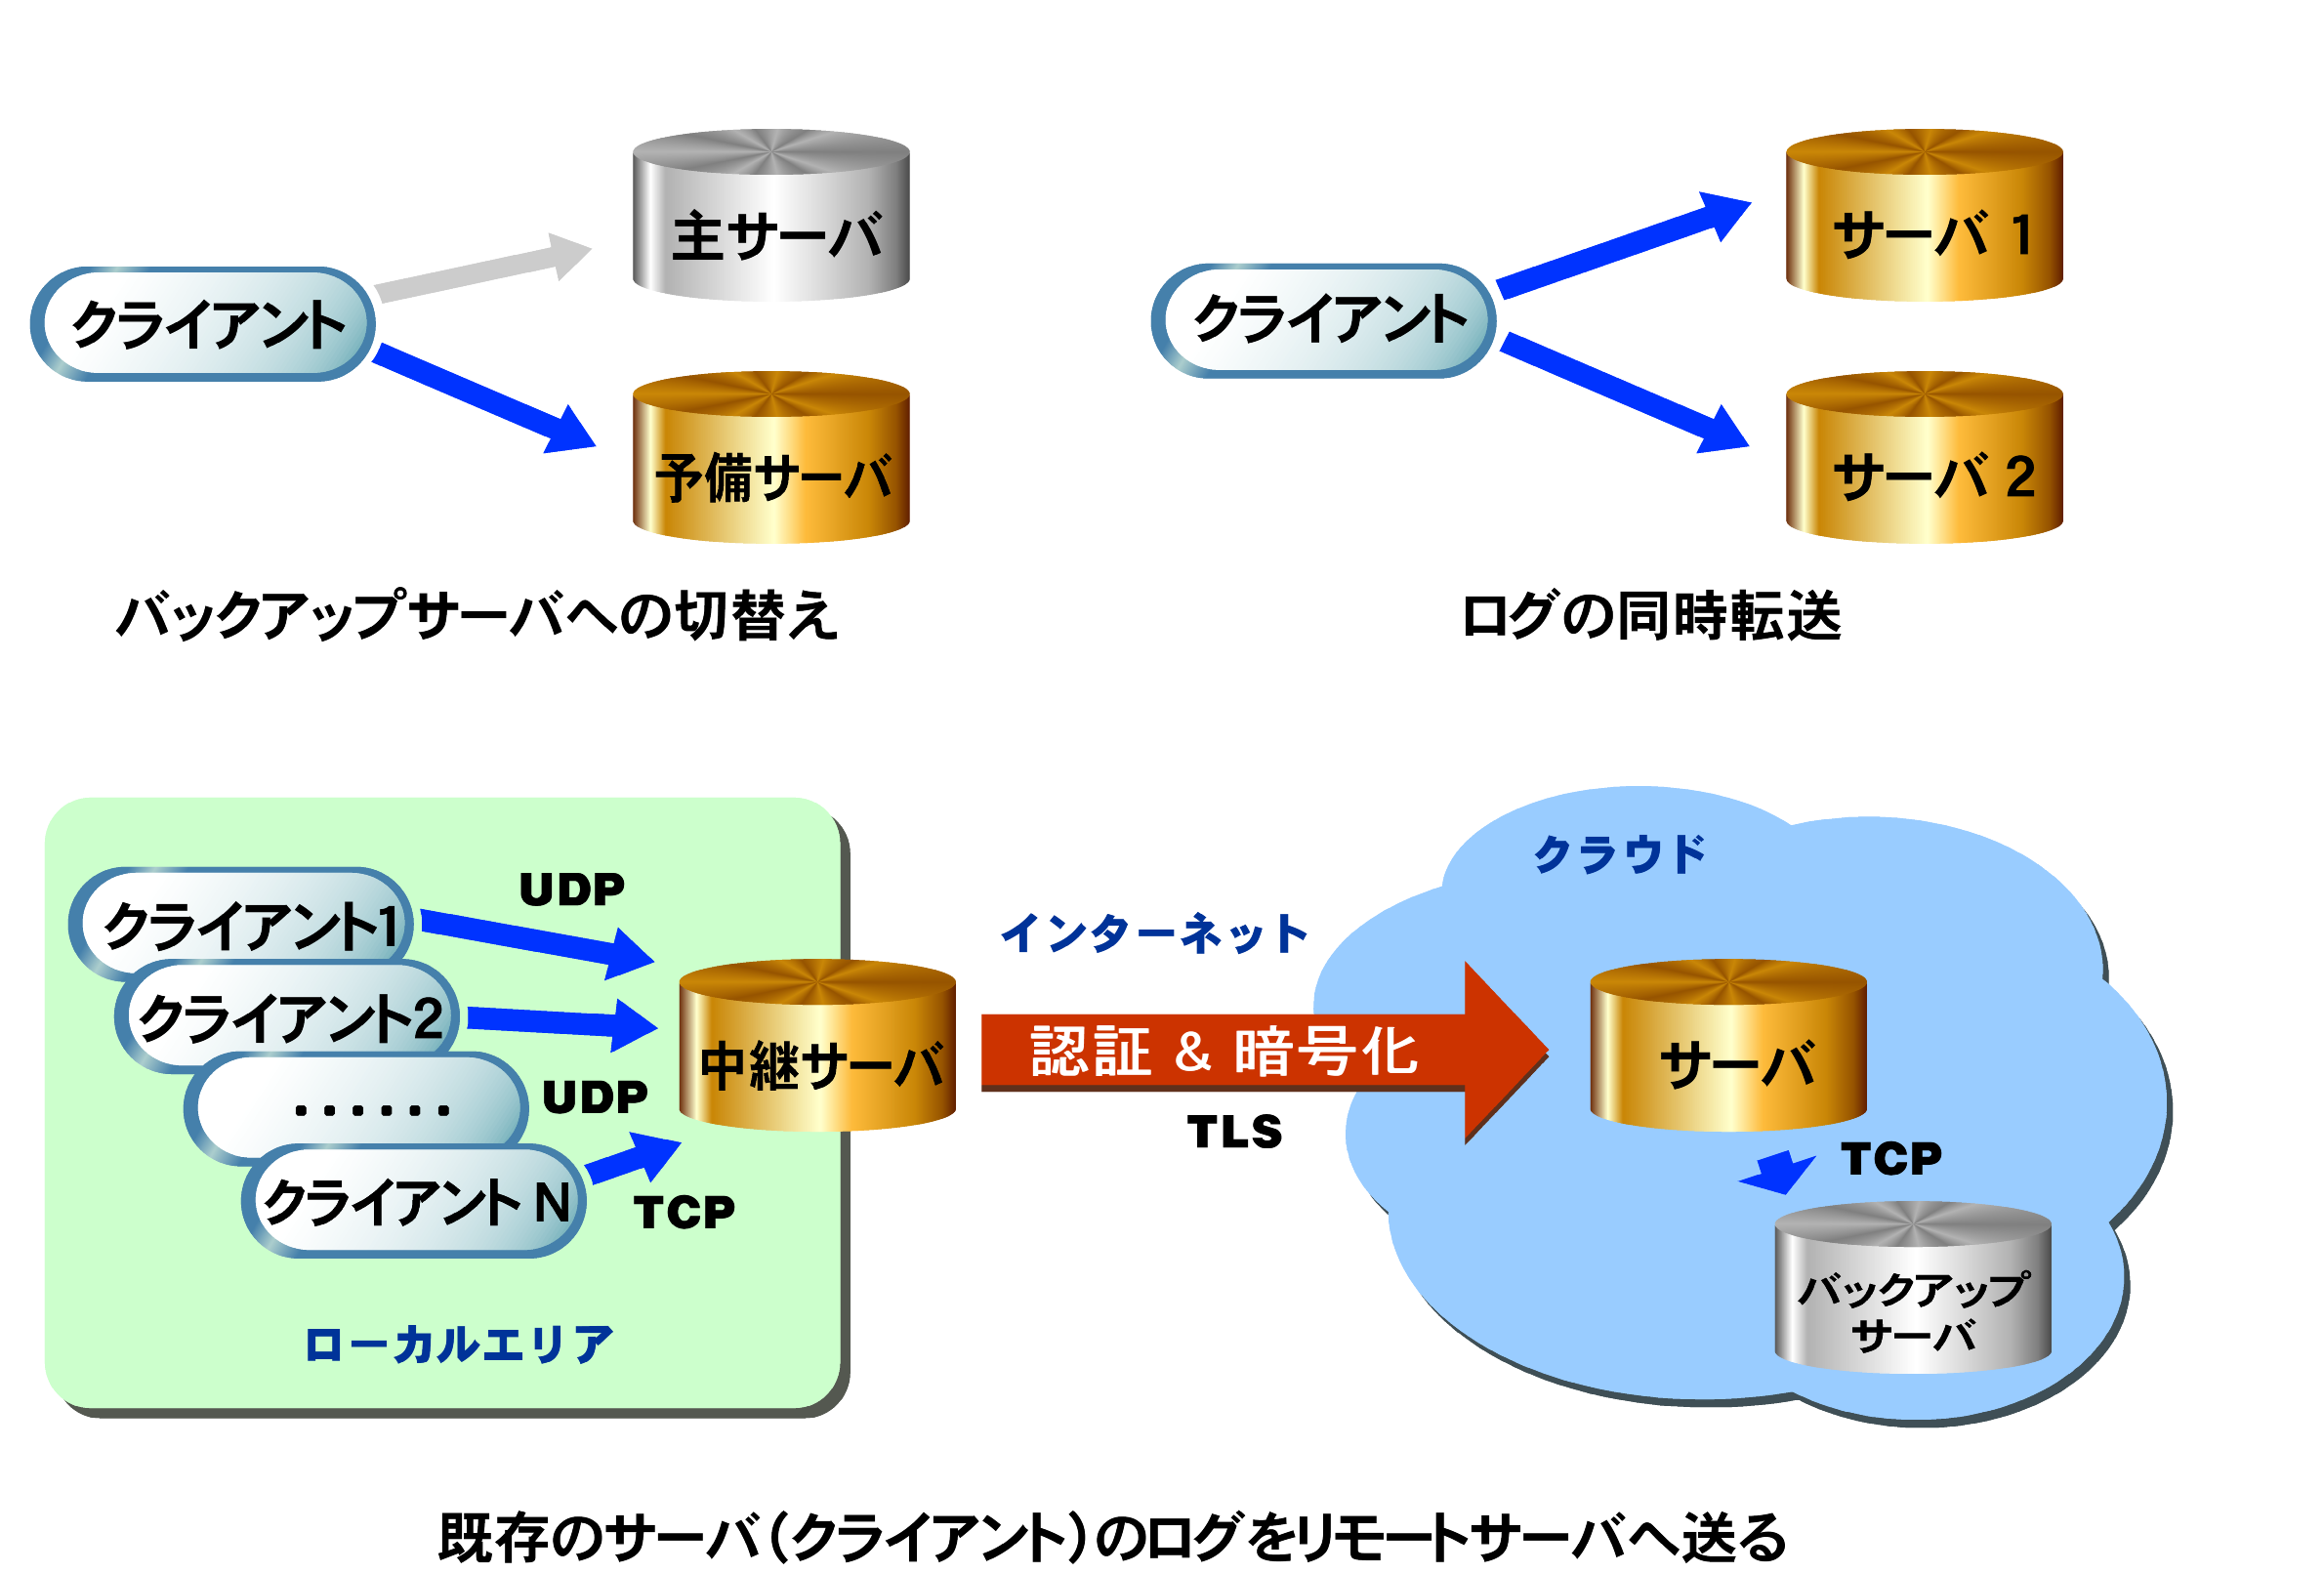 https://www.mubit.co.jp/sub/products/blue/img2/rsyslog.png